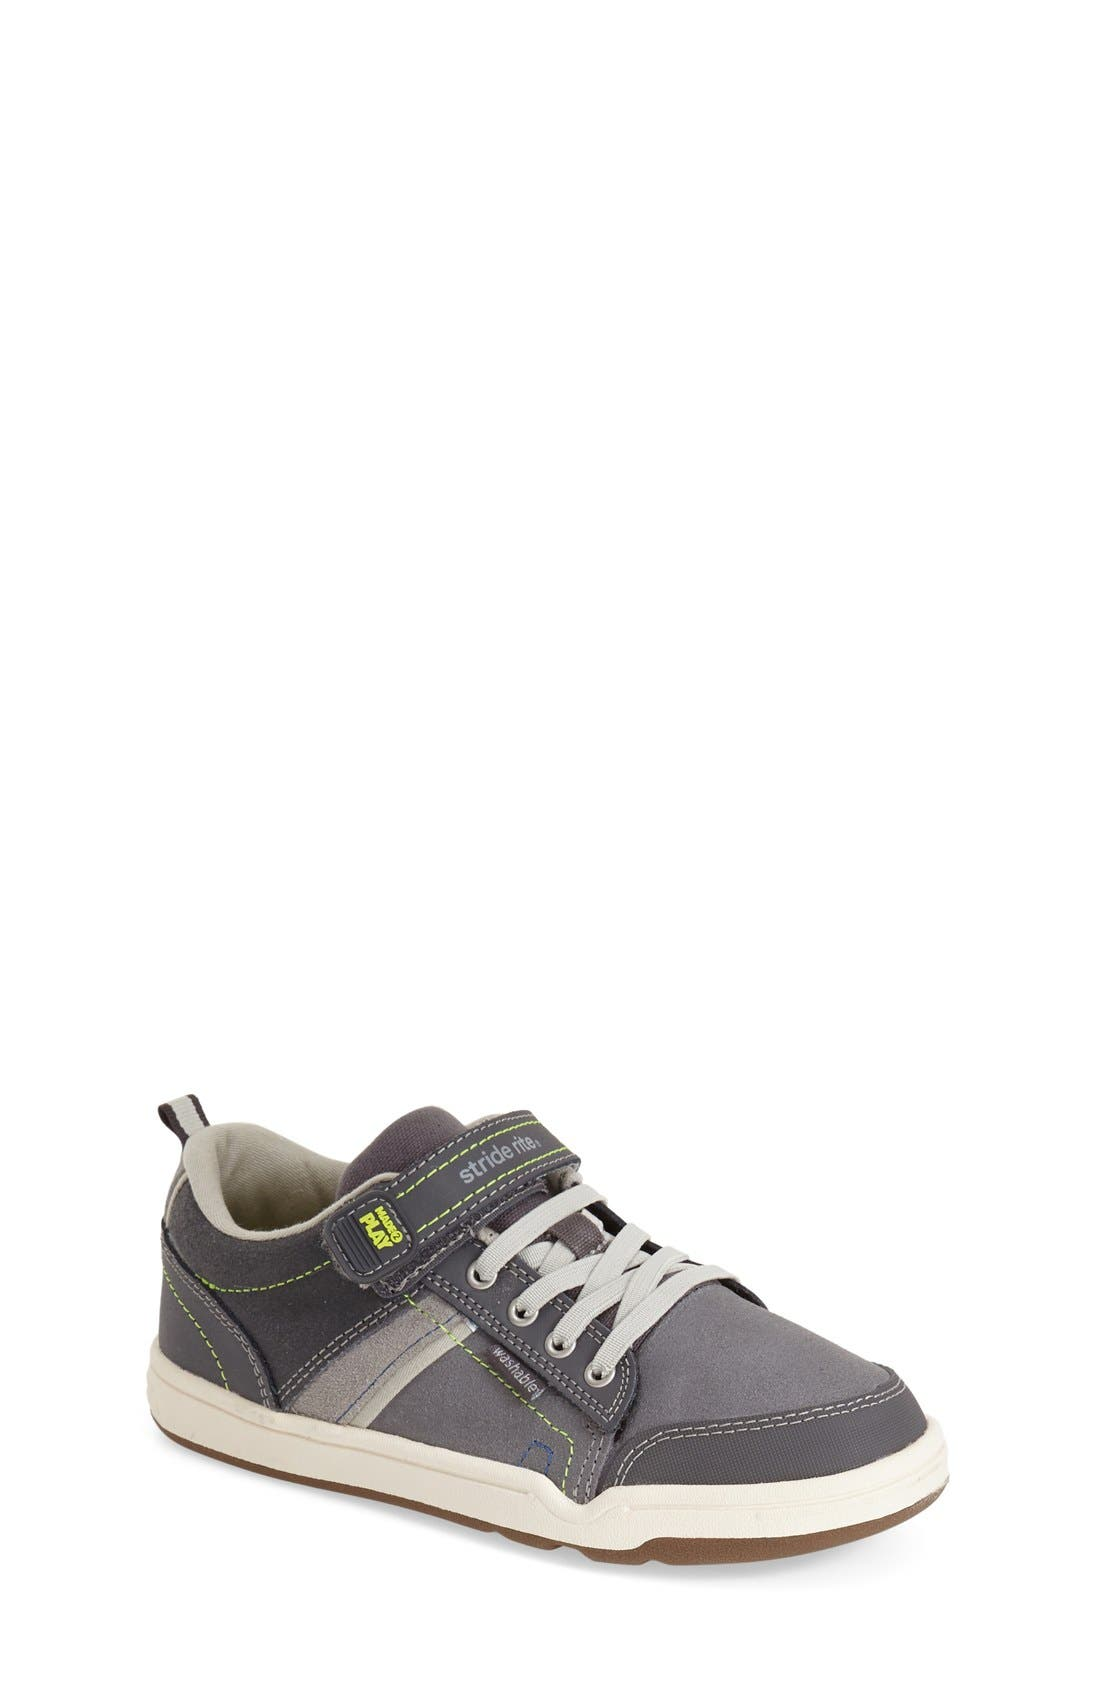 Main Image - Stride Rite 'Made 2 Play® Caleb' Sneaker (Toddler & Little Kid) (Online Only)